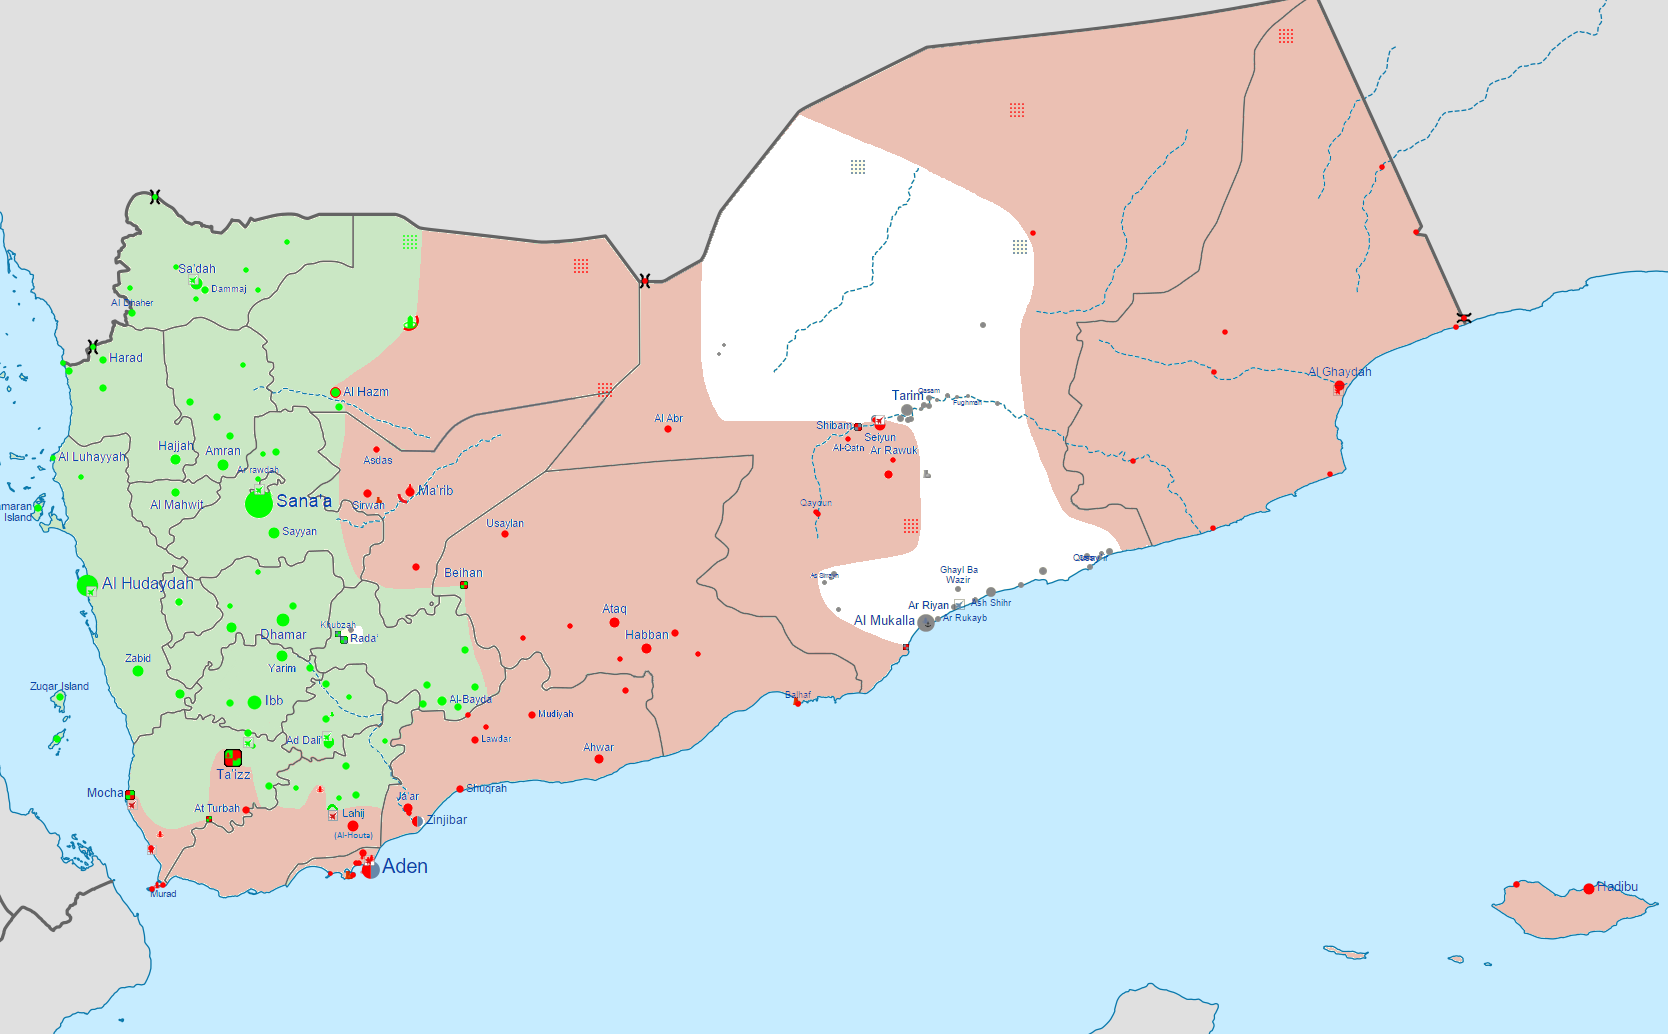 Detailed map of Yemen's Civil War  Green:  Controlled by Revolutionary Committee Red: Controlled by Hadi-led government and the Southern Movement White: Controlled by Ansar al-Sharia/AQAP forces Source: https://en.wikipedia.org/wiki/Yemeni_Civil_War_(2015)